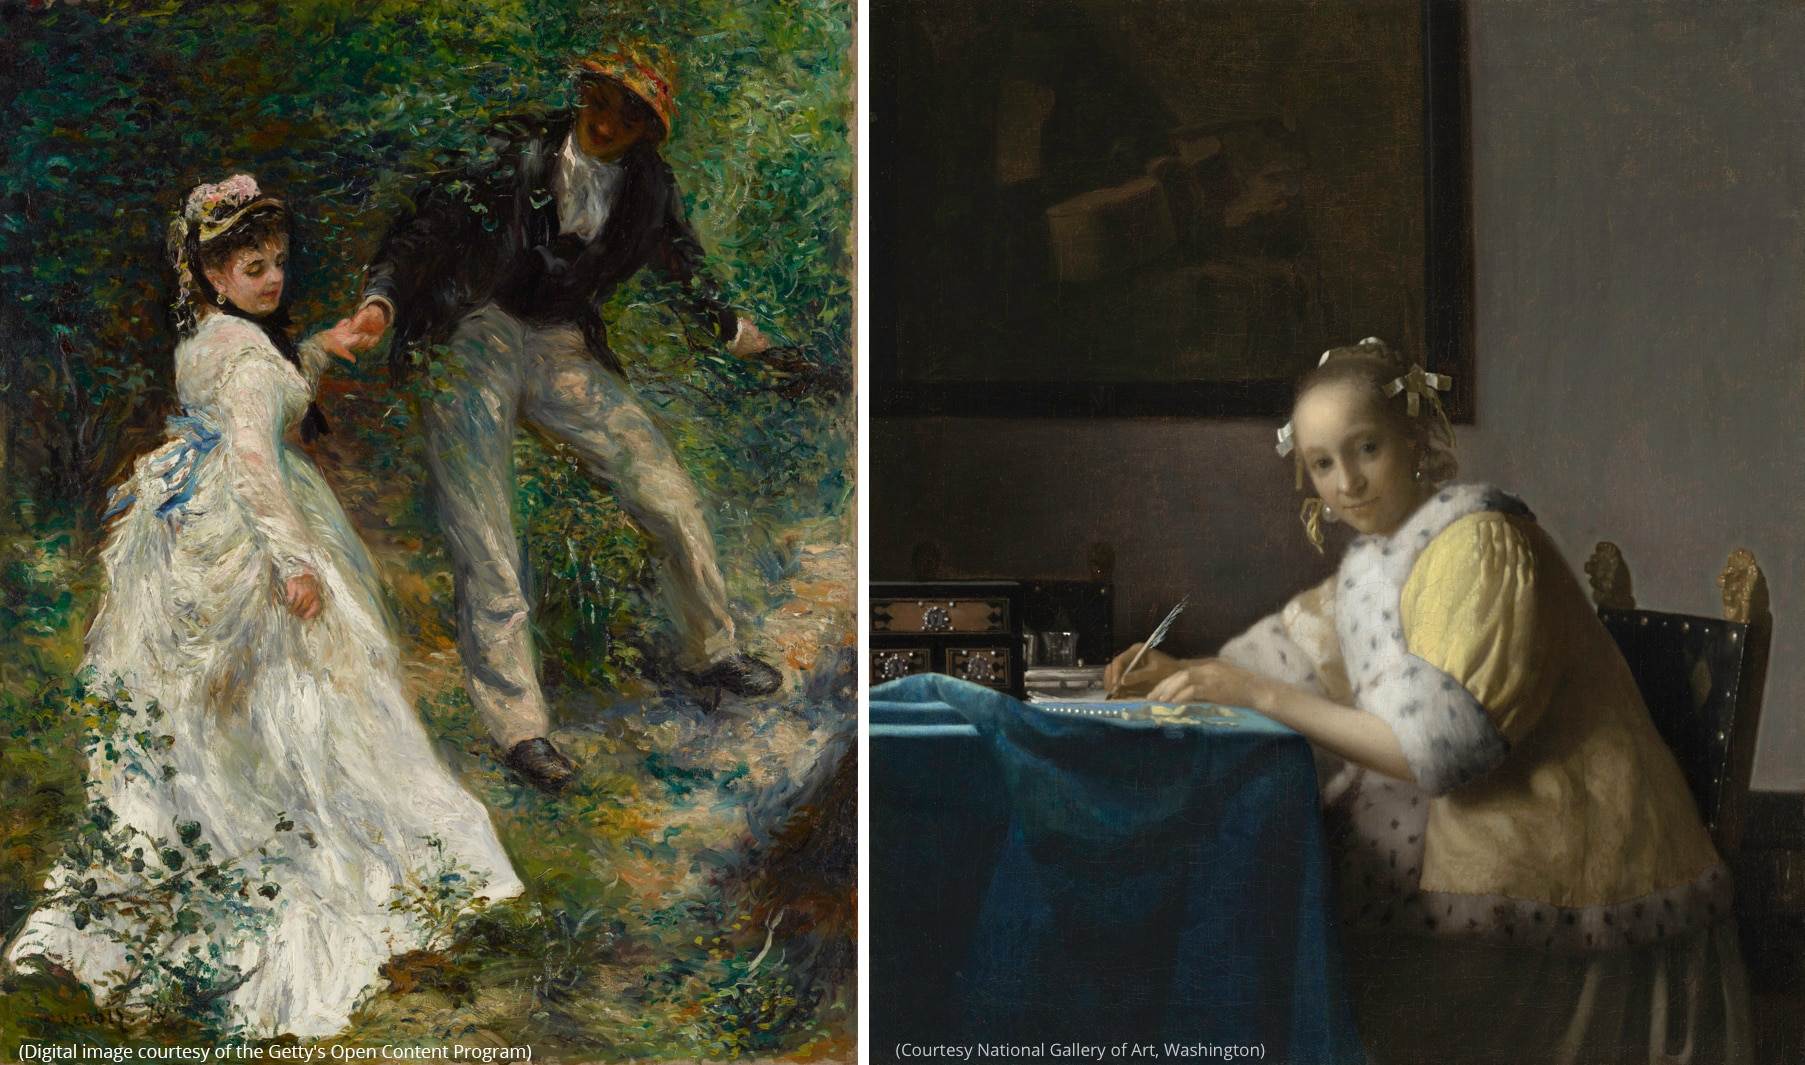 """Left: The Pierre-Auguste Renoir painting """"La Promenade"""" (Digital image courtesy of the Getty's Open Content Program) Right: The Johannes Vermeer painting """"A Lady Writing"""" (Courtesy National Gallery of Art, Washington)"""